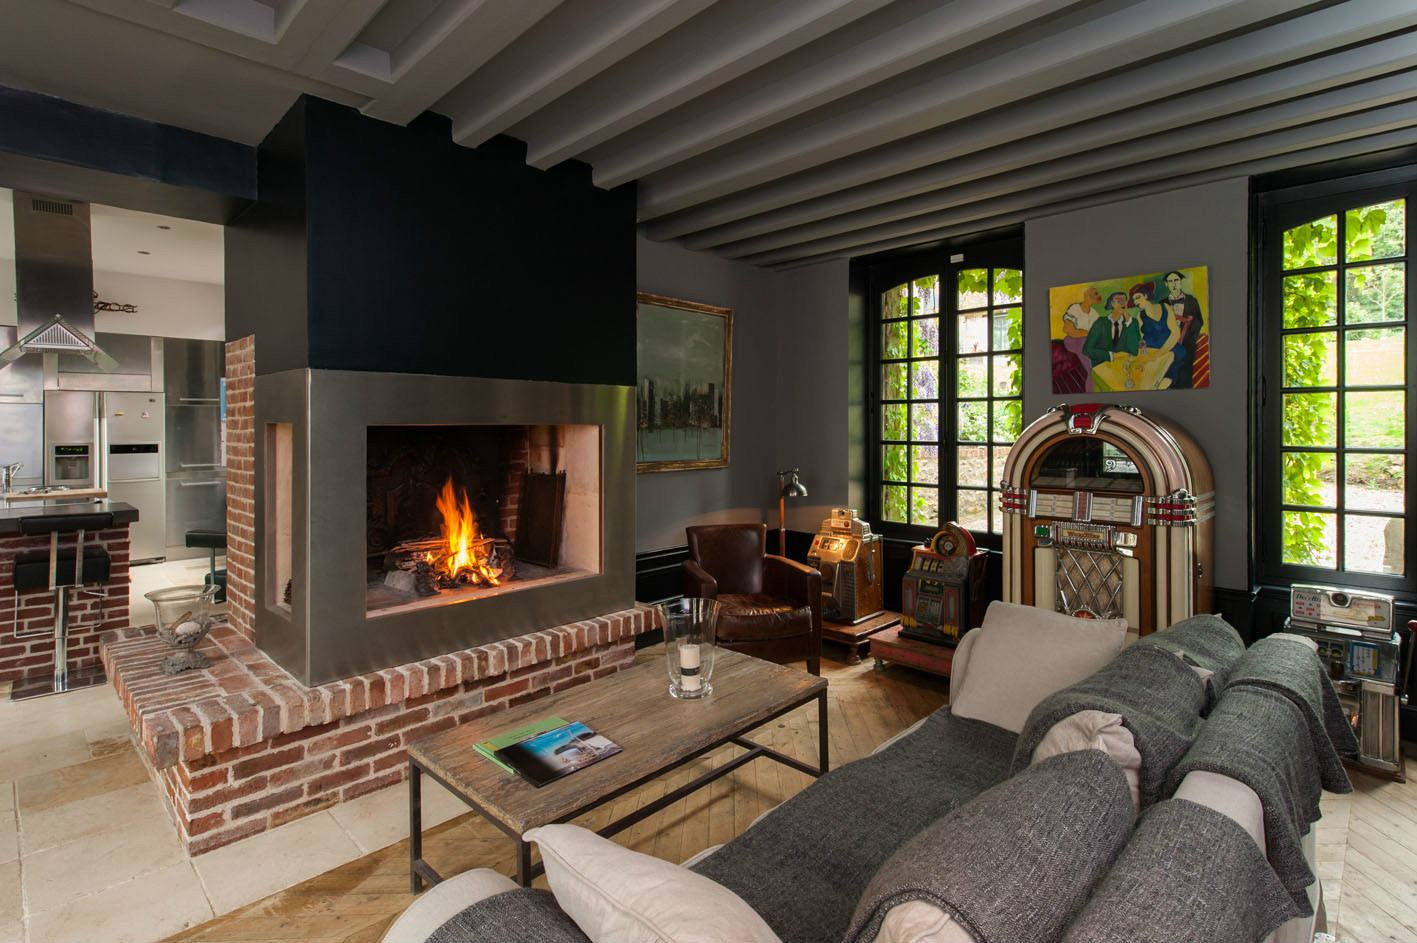 Property For Sale at Honfleur, Charming ambiance and calm in city-center.